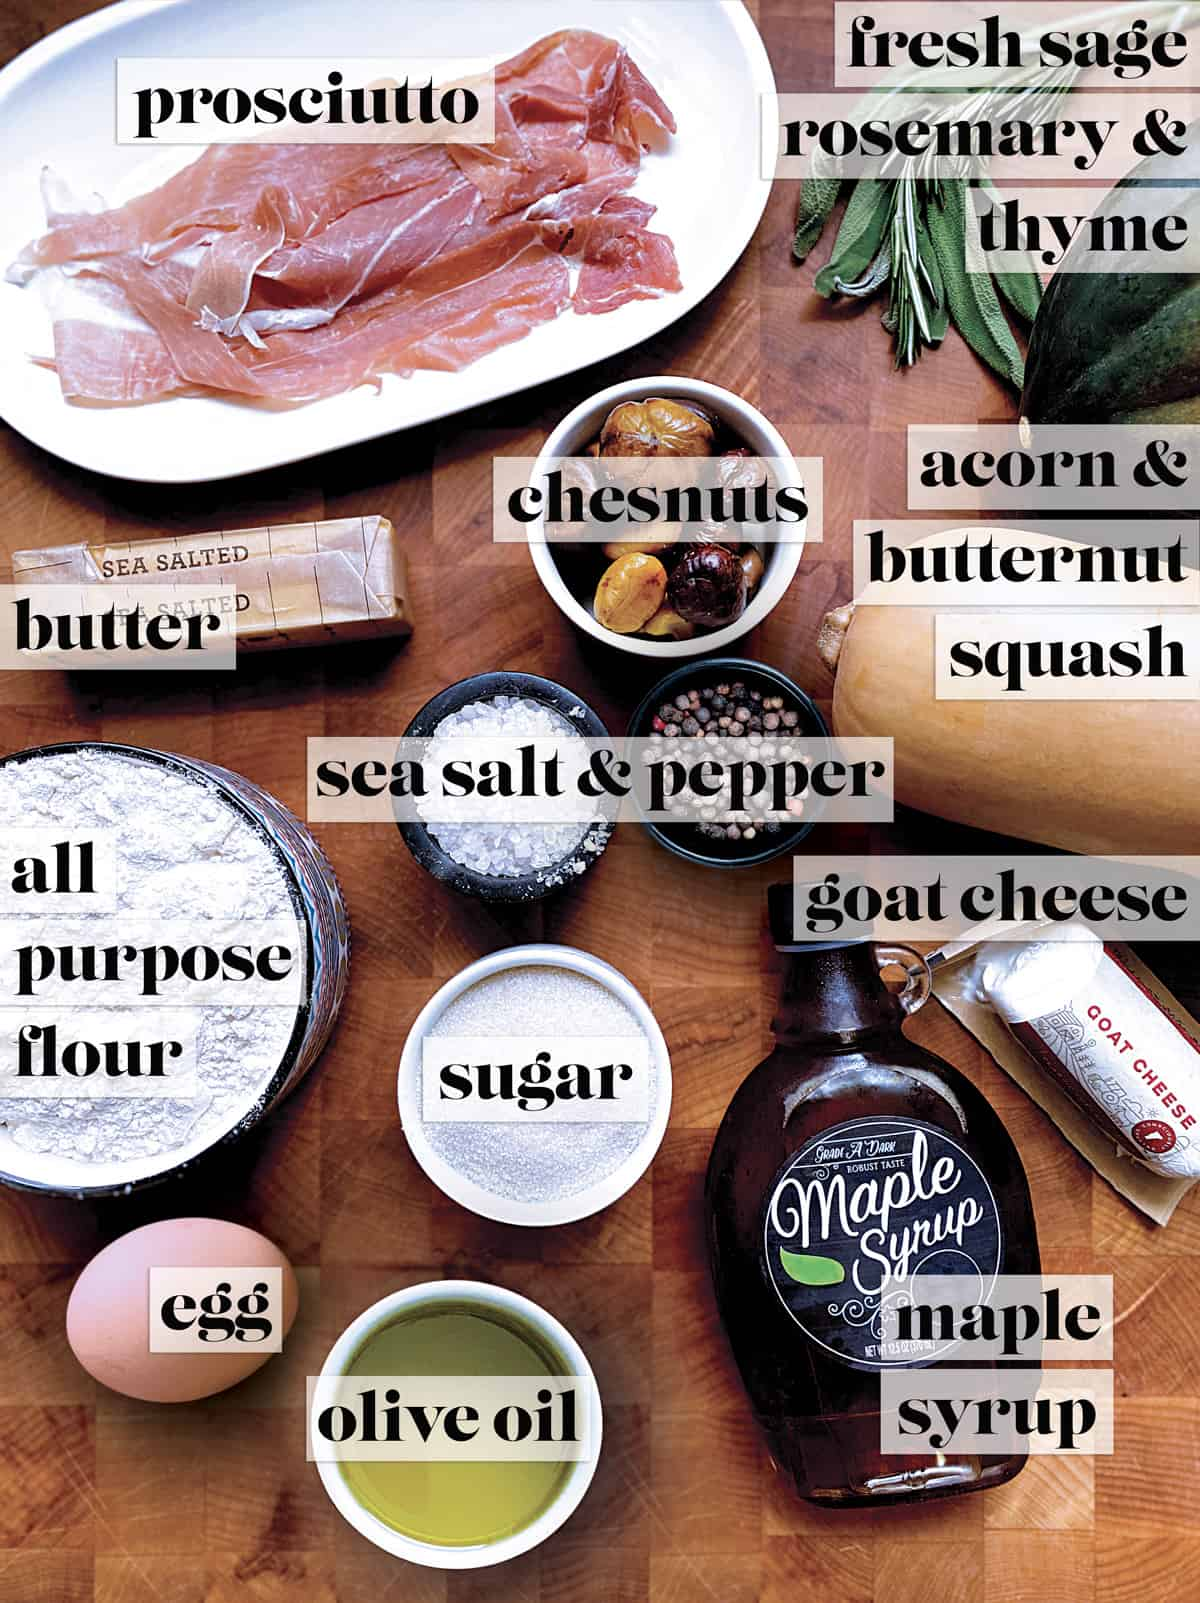 A plate with prosciutto, some herbs, a stick of butter, a bowl with chesnuts, an acorn and a butternut squash, salt and pepper, a bowl with flour, a bowl with sugar, a bottle of maple syrup, a piece of goat cheese, an egg, and a bowl with olive oil on a butcher block